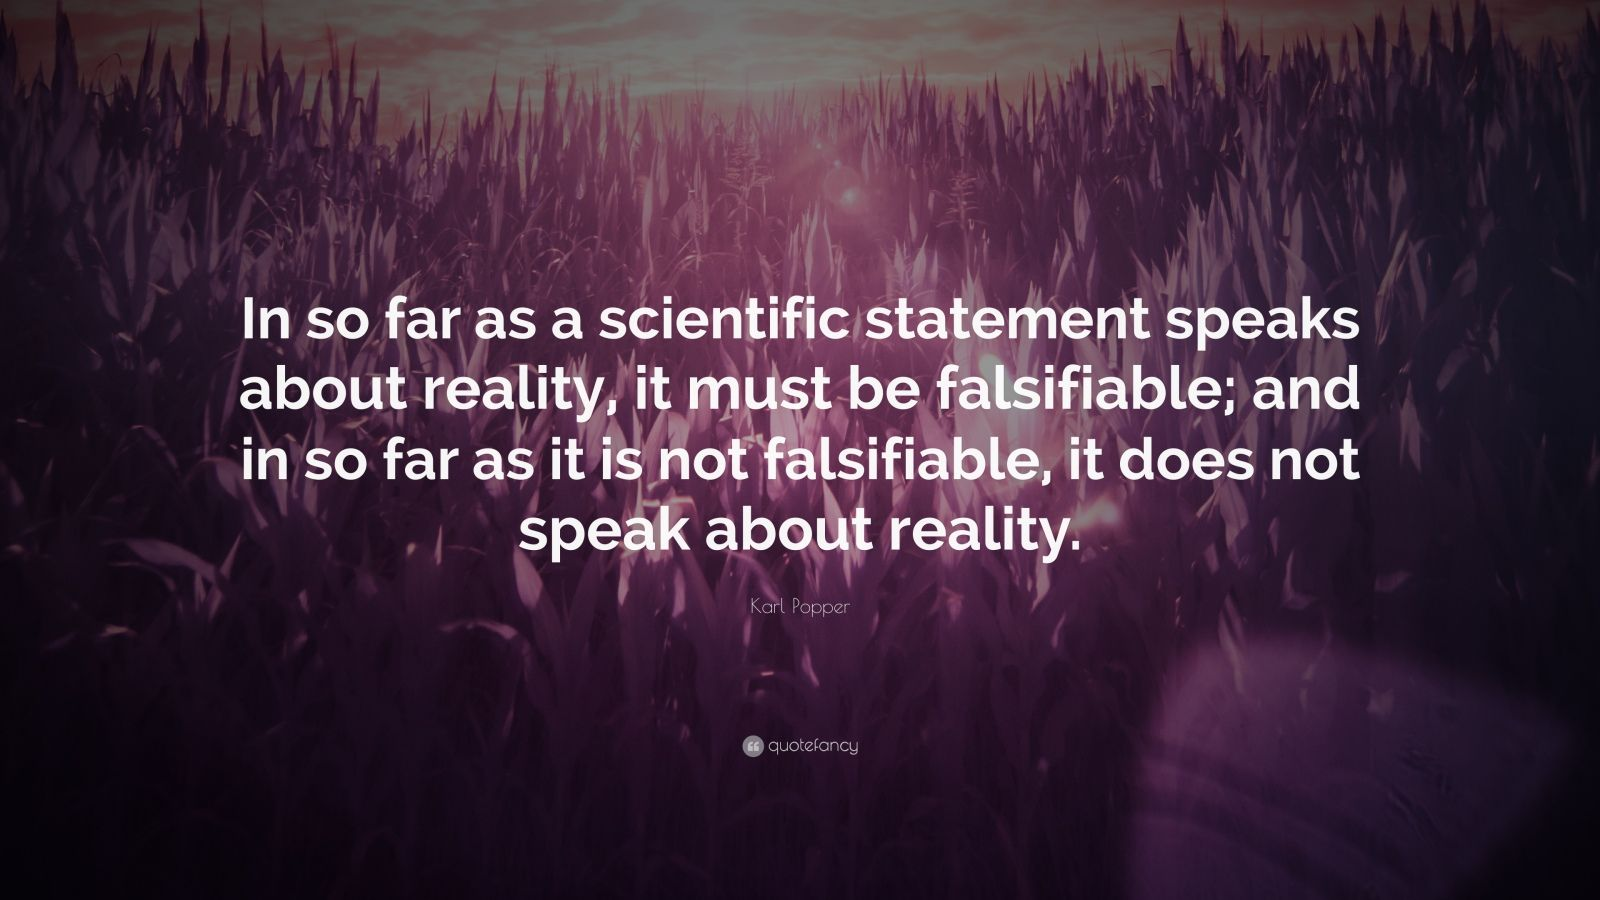 karl popper falsification Sir karl popper was one of the 20th century's most influential thinkers his contribution to the philosophy of science was to turn upside down ideas of how a theory might become established.